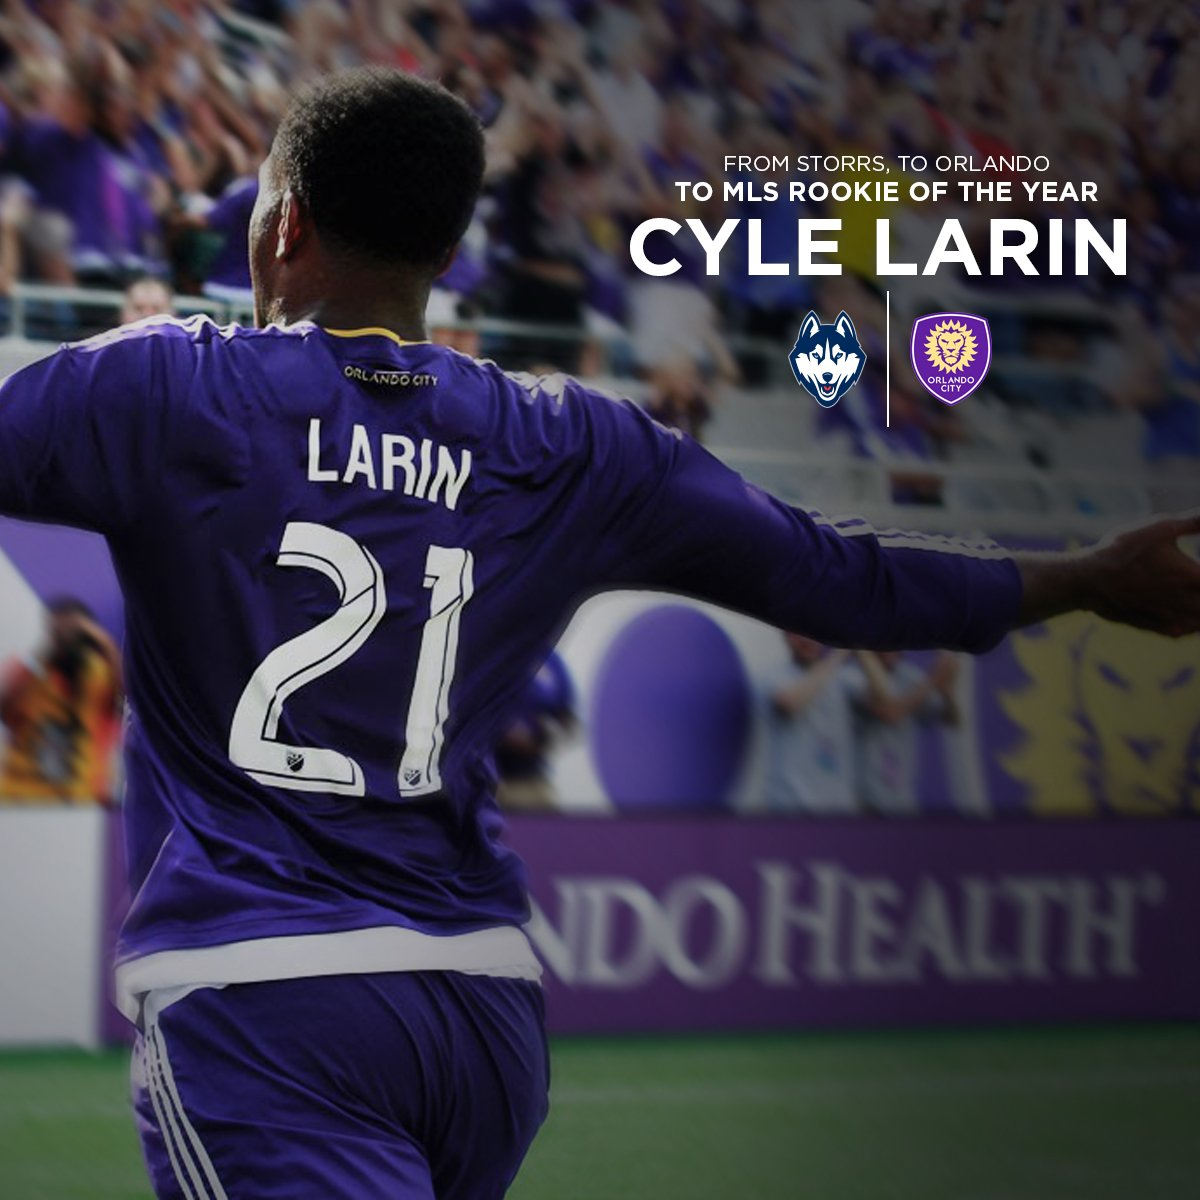 .@CyleLarin is the @MLS Rookie of the Year!  Congrats to the former #UConn and current @OrlandoCitySC striker! https://t.co/HKMO6pu5Mw